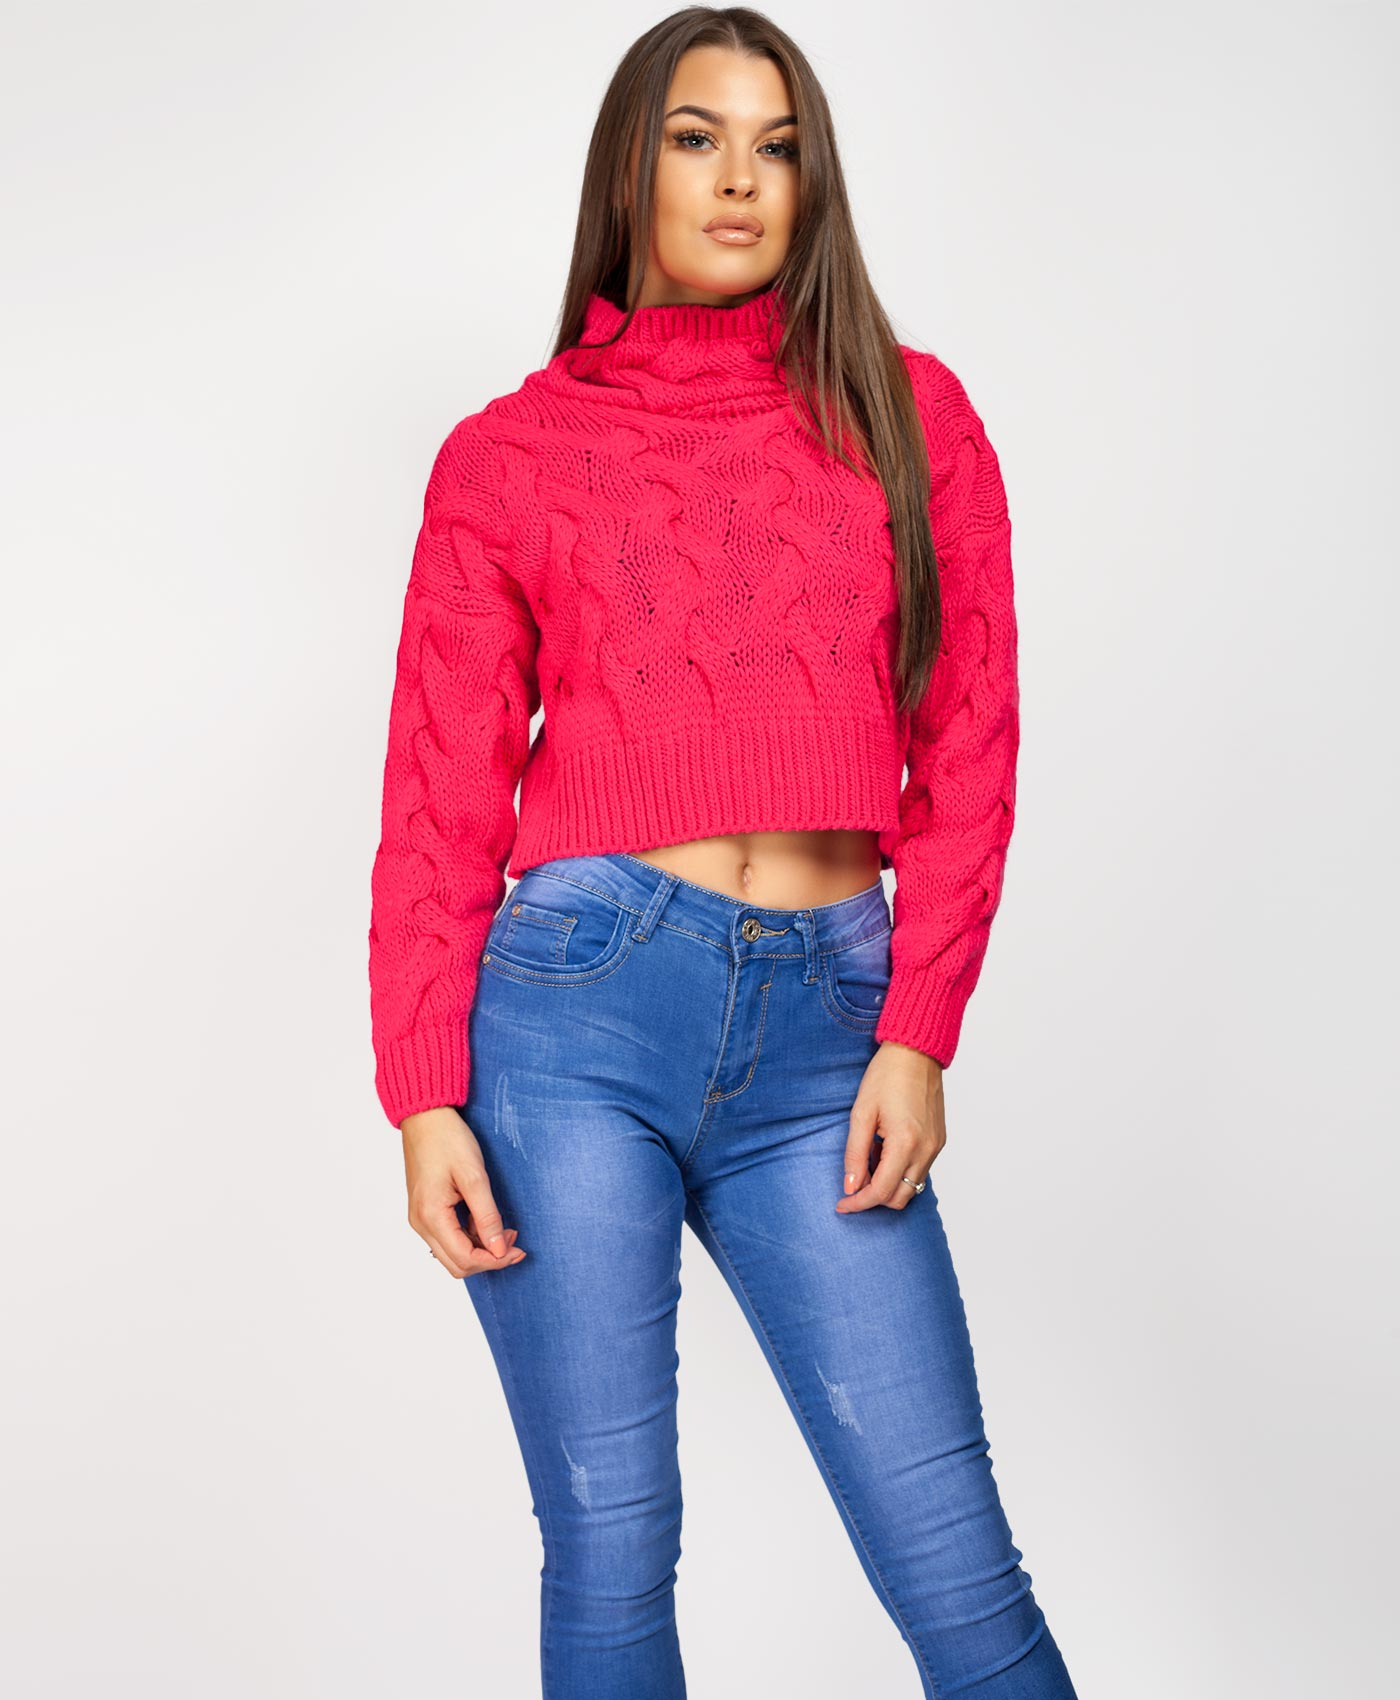 Womens-Ladies-Cable-Knitted-High-Neck-Cropped-Top-Pullover-Sweater-Chunky-Jumper thumbnail 14